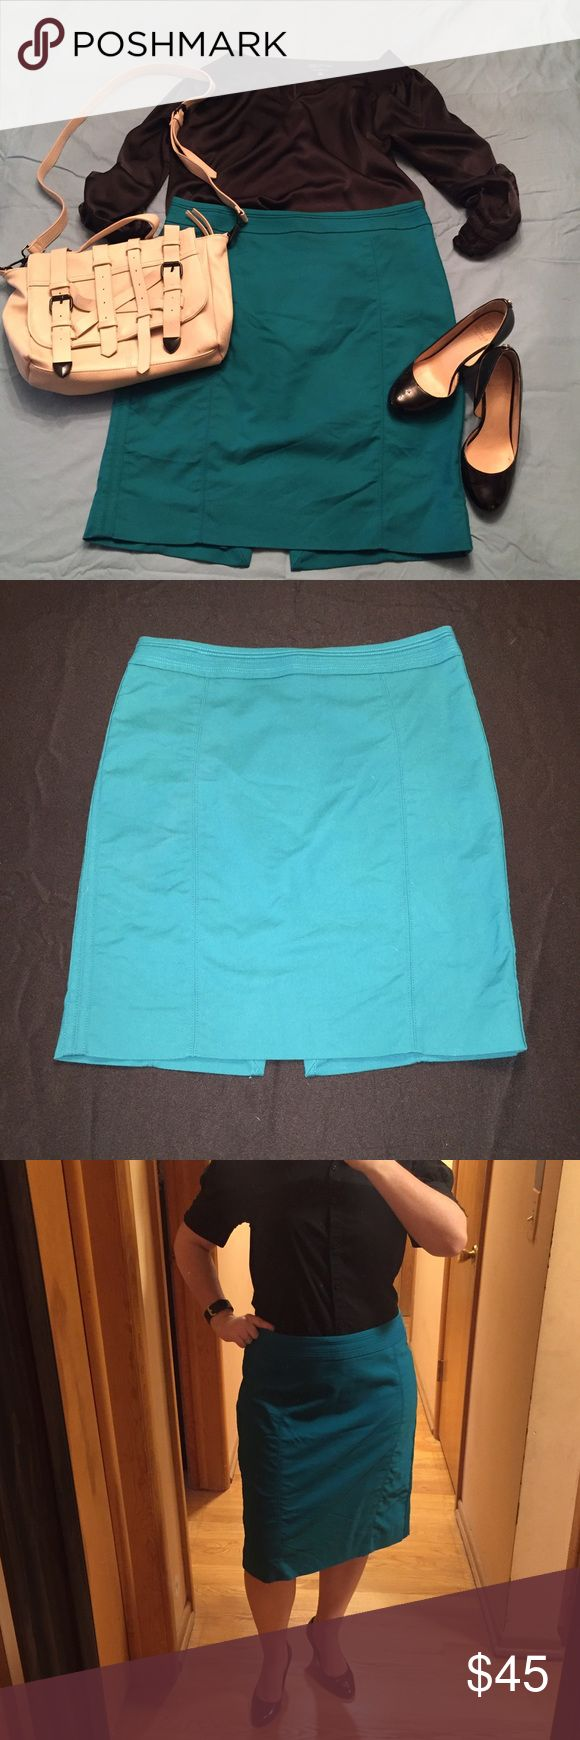 WHBM teal pencil skirt Knee length - perfect for work or a dressy occasion. Pop of color - the teal is a great accent color to bring together your outfit. Double seams - this skirt features double seams making it look edgier. Lined skirt - no more worry about your slip showing! Great condition, no pulled seams or tears. White House Black Market Skirts Pencil